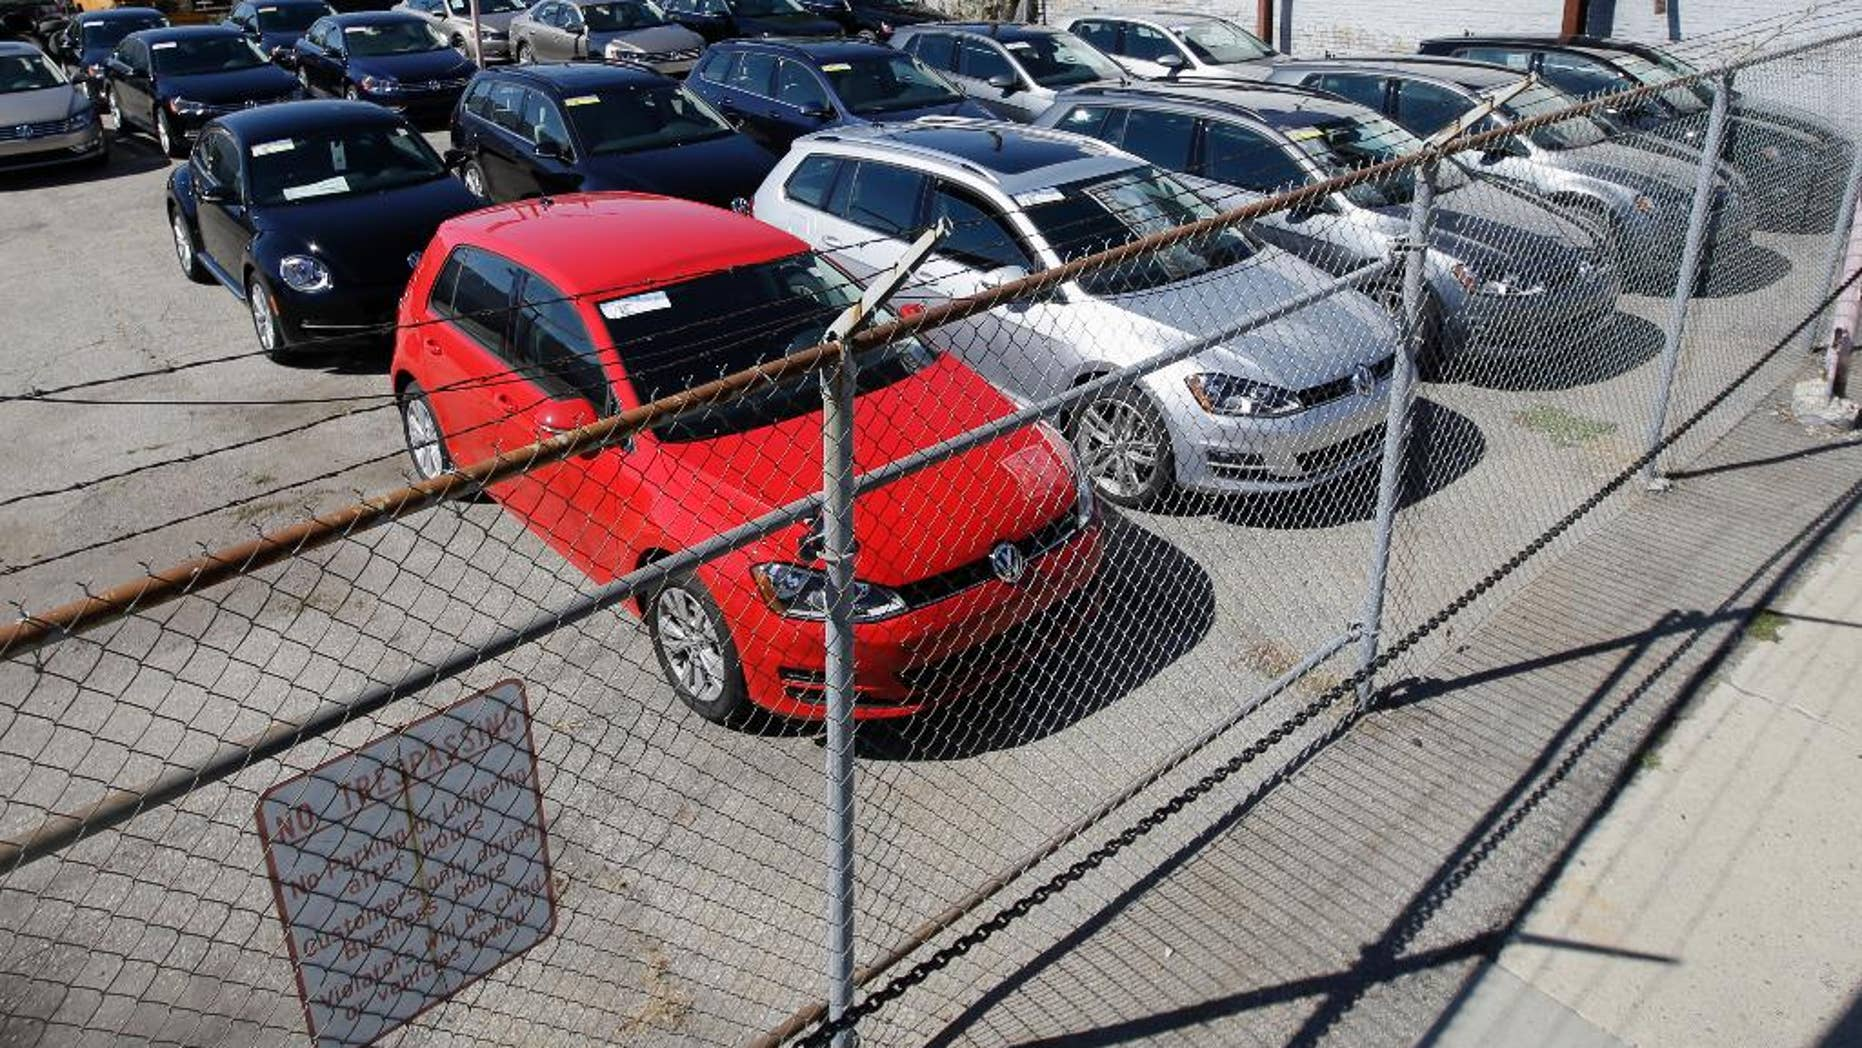 """FILE - In this Sept. 23, 2015 file photo, diesel Volkswagens are seen behind a security fence on a storage lot near a VW dealership in Salt Lake City. Volkswagen is far from the first company to stand accused of trying to game required emissions tests. Almost since the passage of the Clean Air Act in 1970, major manufacturers of cars, trucks and heavy equipment have been busted for using what regulators call """"defeat devices"""" _ typically programing a vehicle's on-board computer to boost horsepower or fuel mileage by belching out dirtier exhaust than allowed. (AP Photo/Rick Bowmer, File)"""